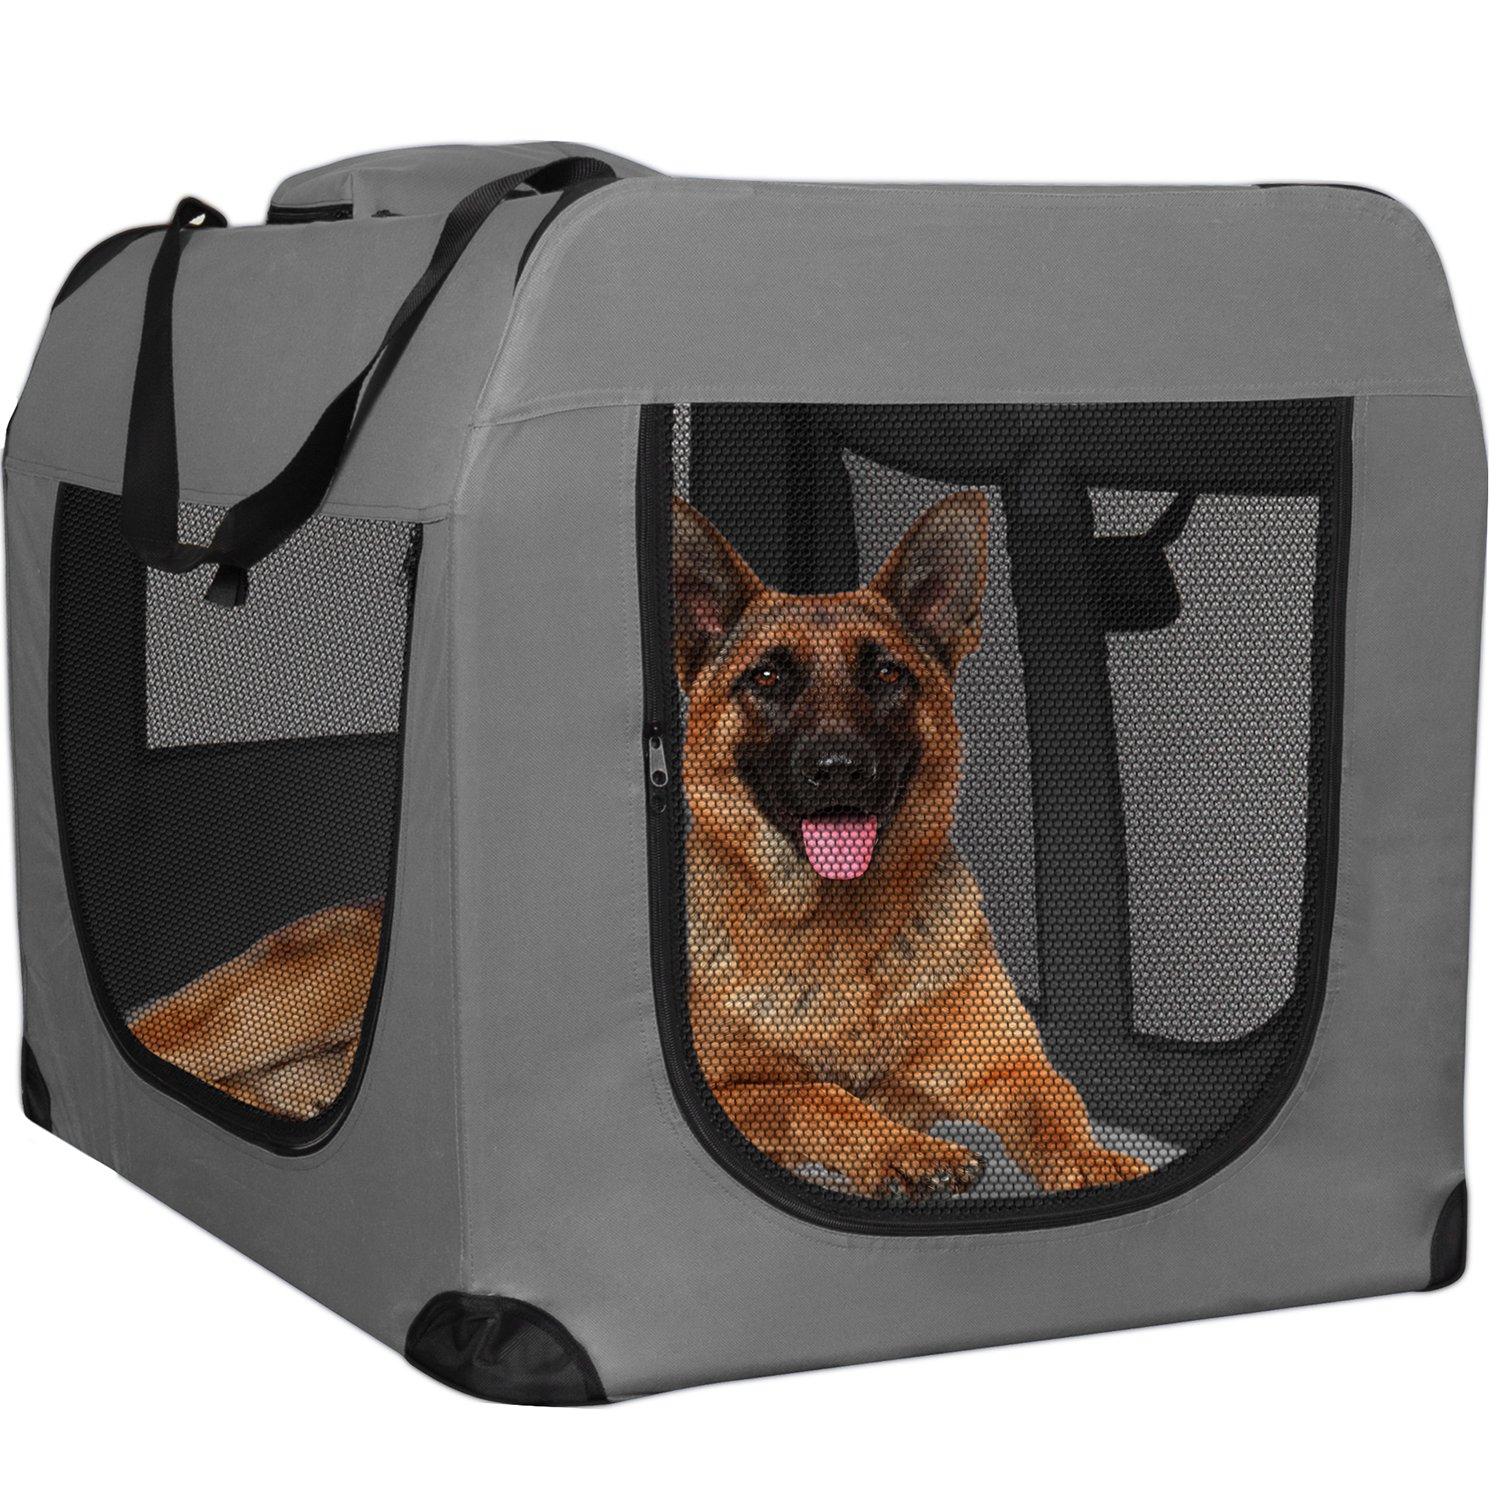 """Paws & Pals Foldable Soft Sided Pet Crate Training Kennel Carrier for Cats and Dogs – 24"""" x 17"""" x 16"""" Inches Gray by Paws & Pals (Image #2)"""